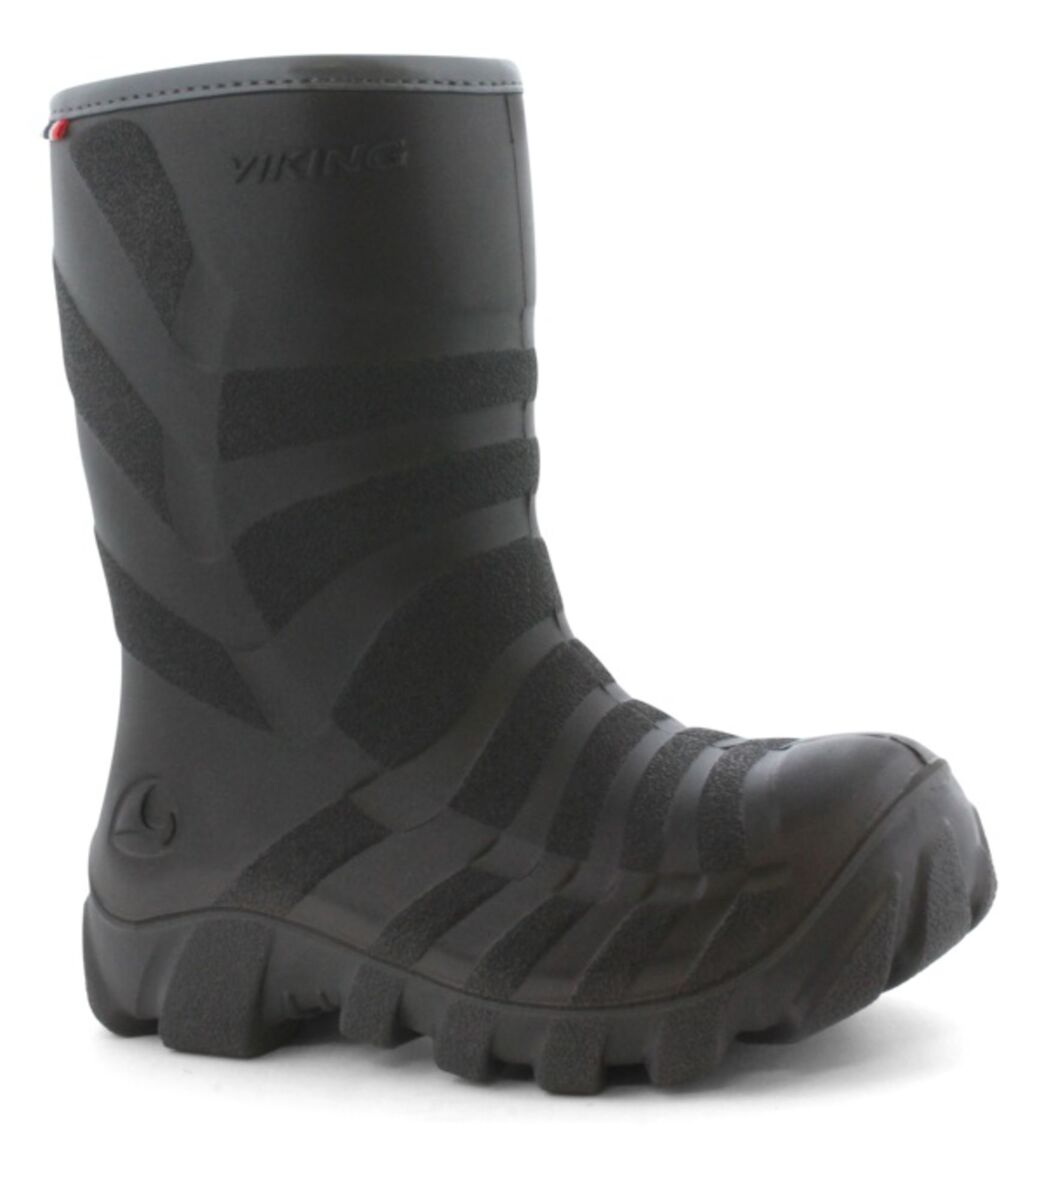 Viking Ultra 2.0 Talvisaappaat, Black/Grey